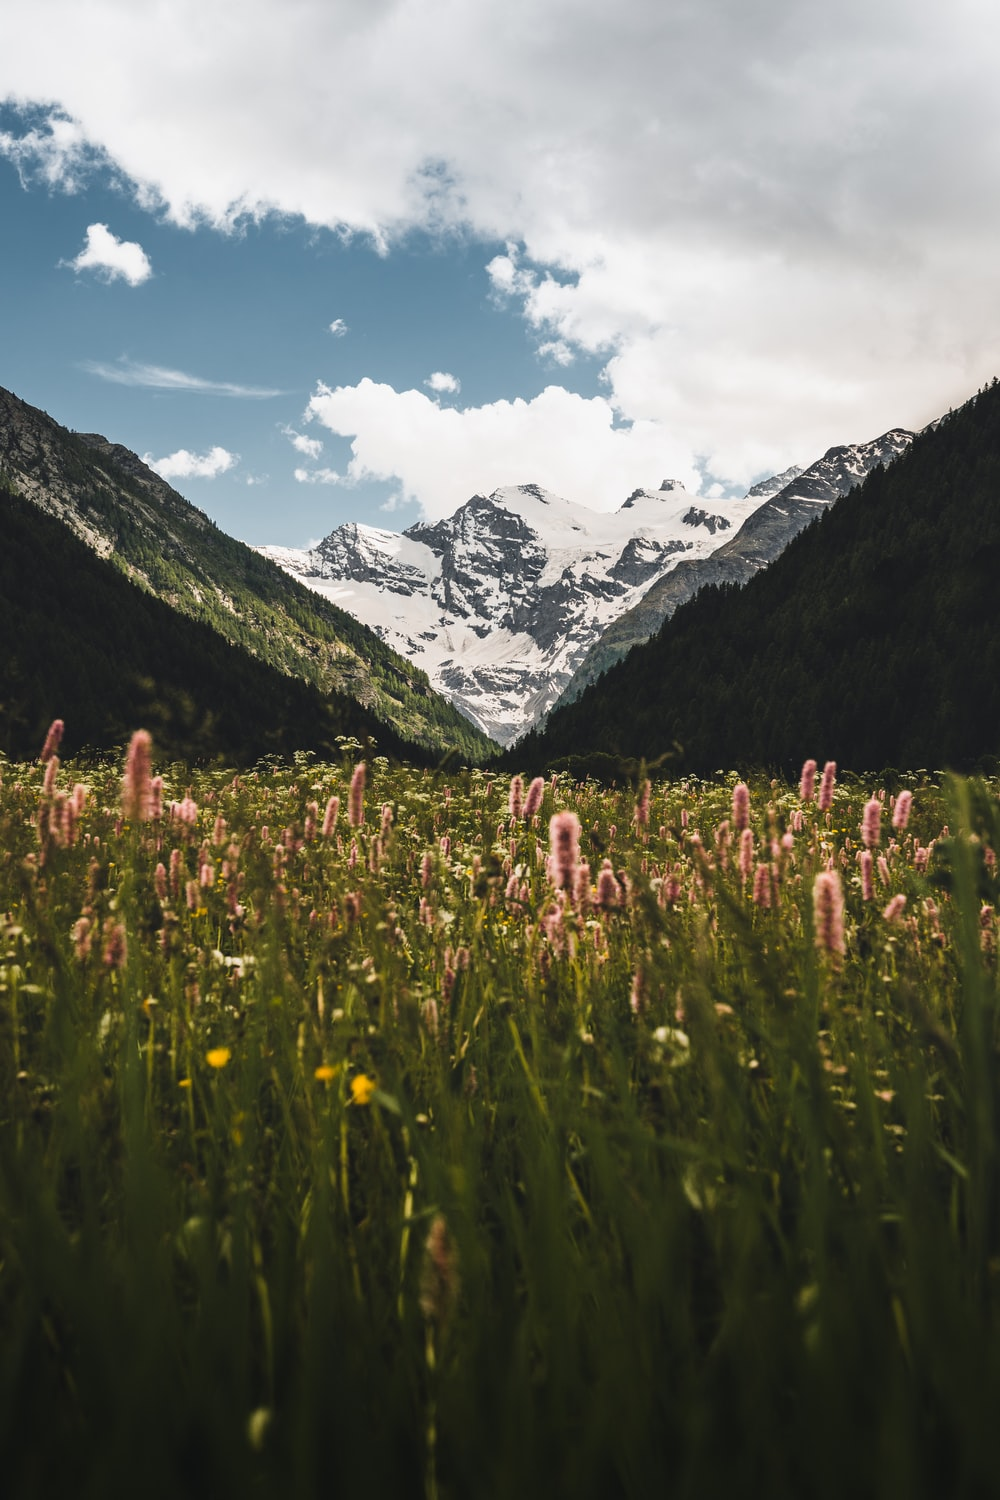 green grass field near snow covered mountain during daytime